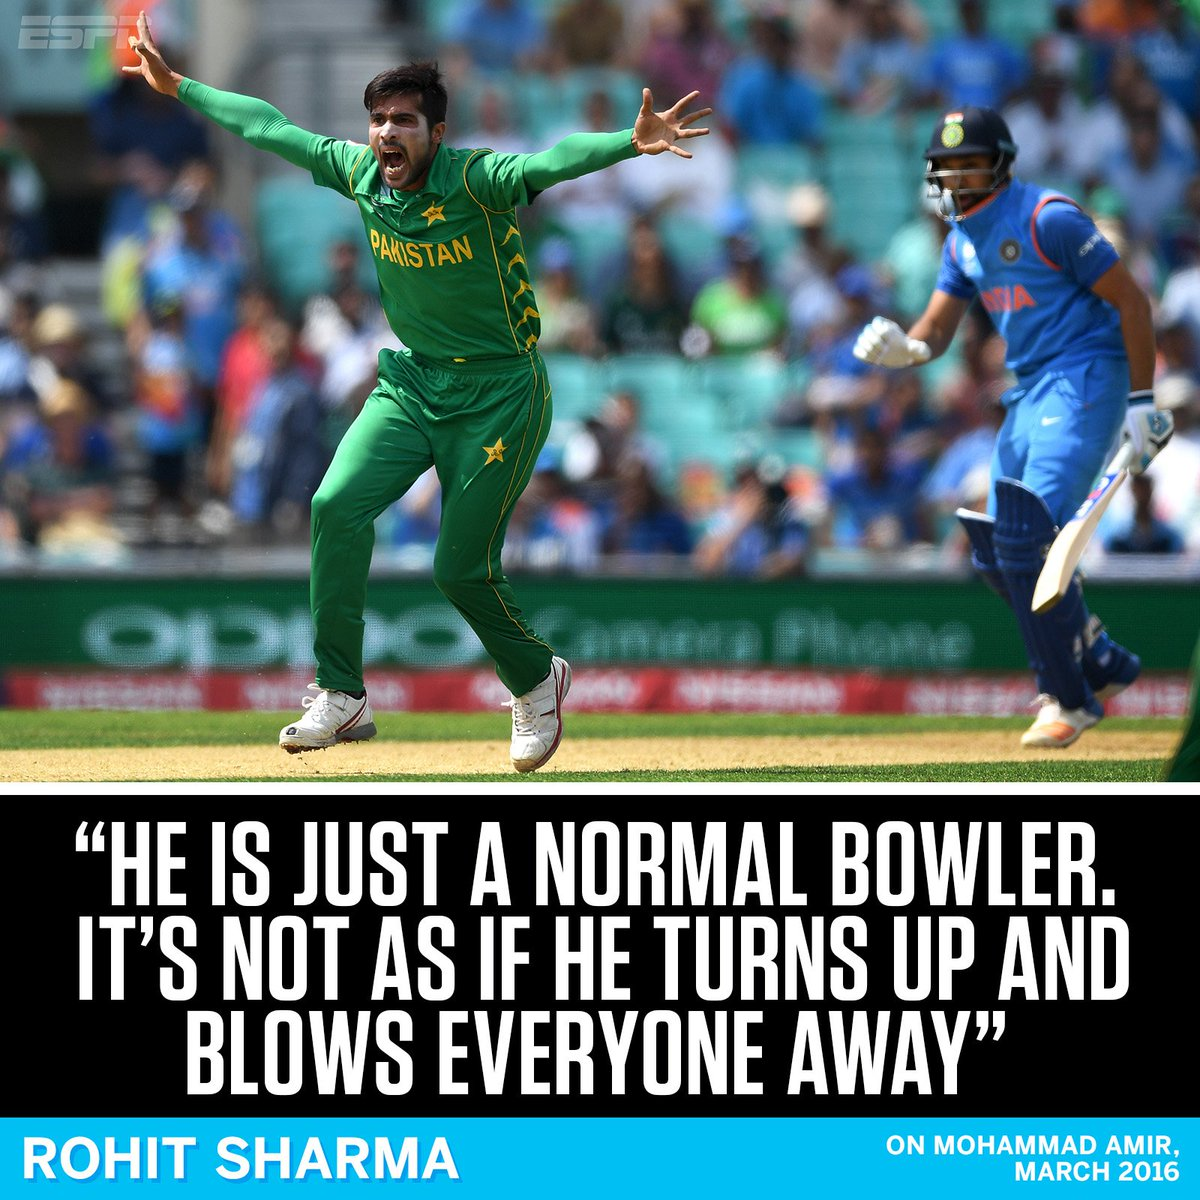 You were saying, Rohit?